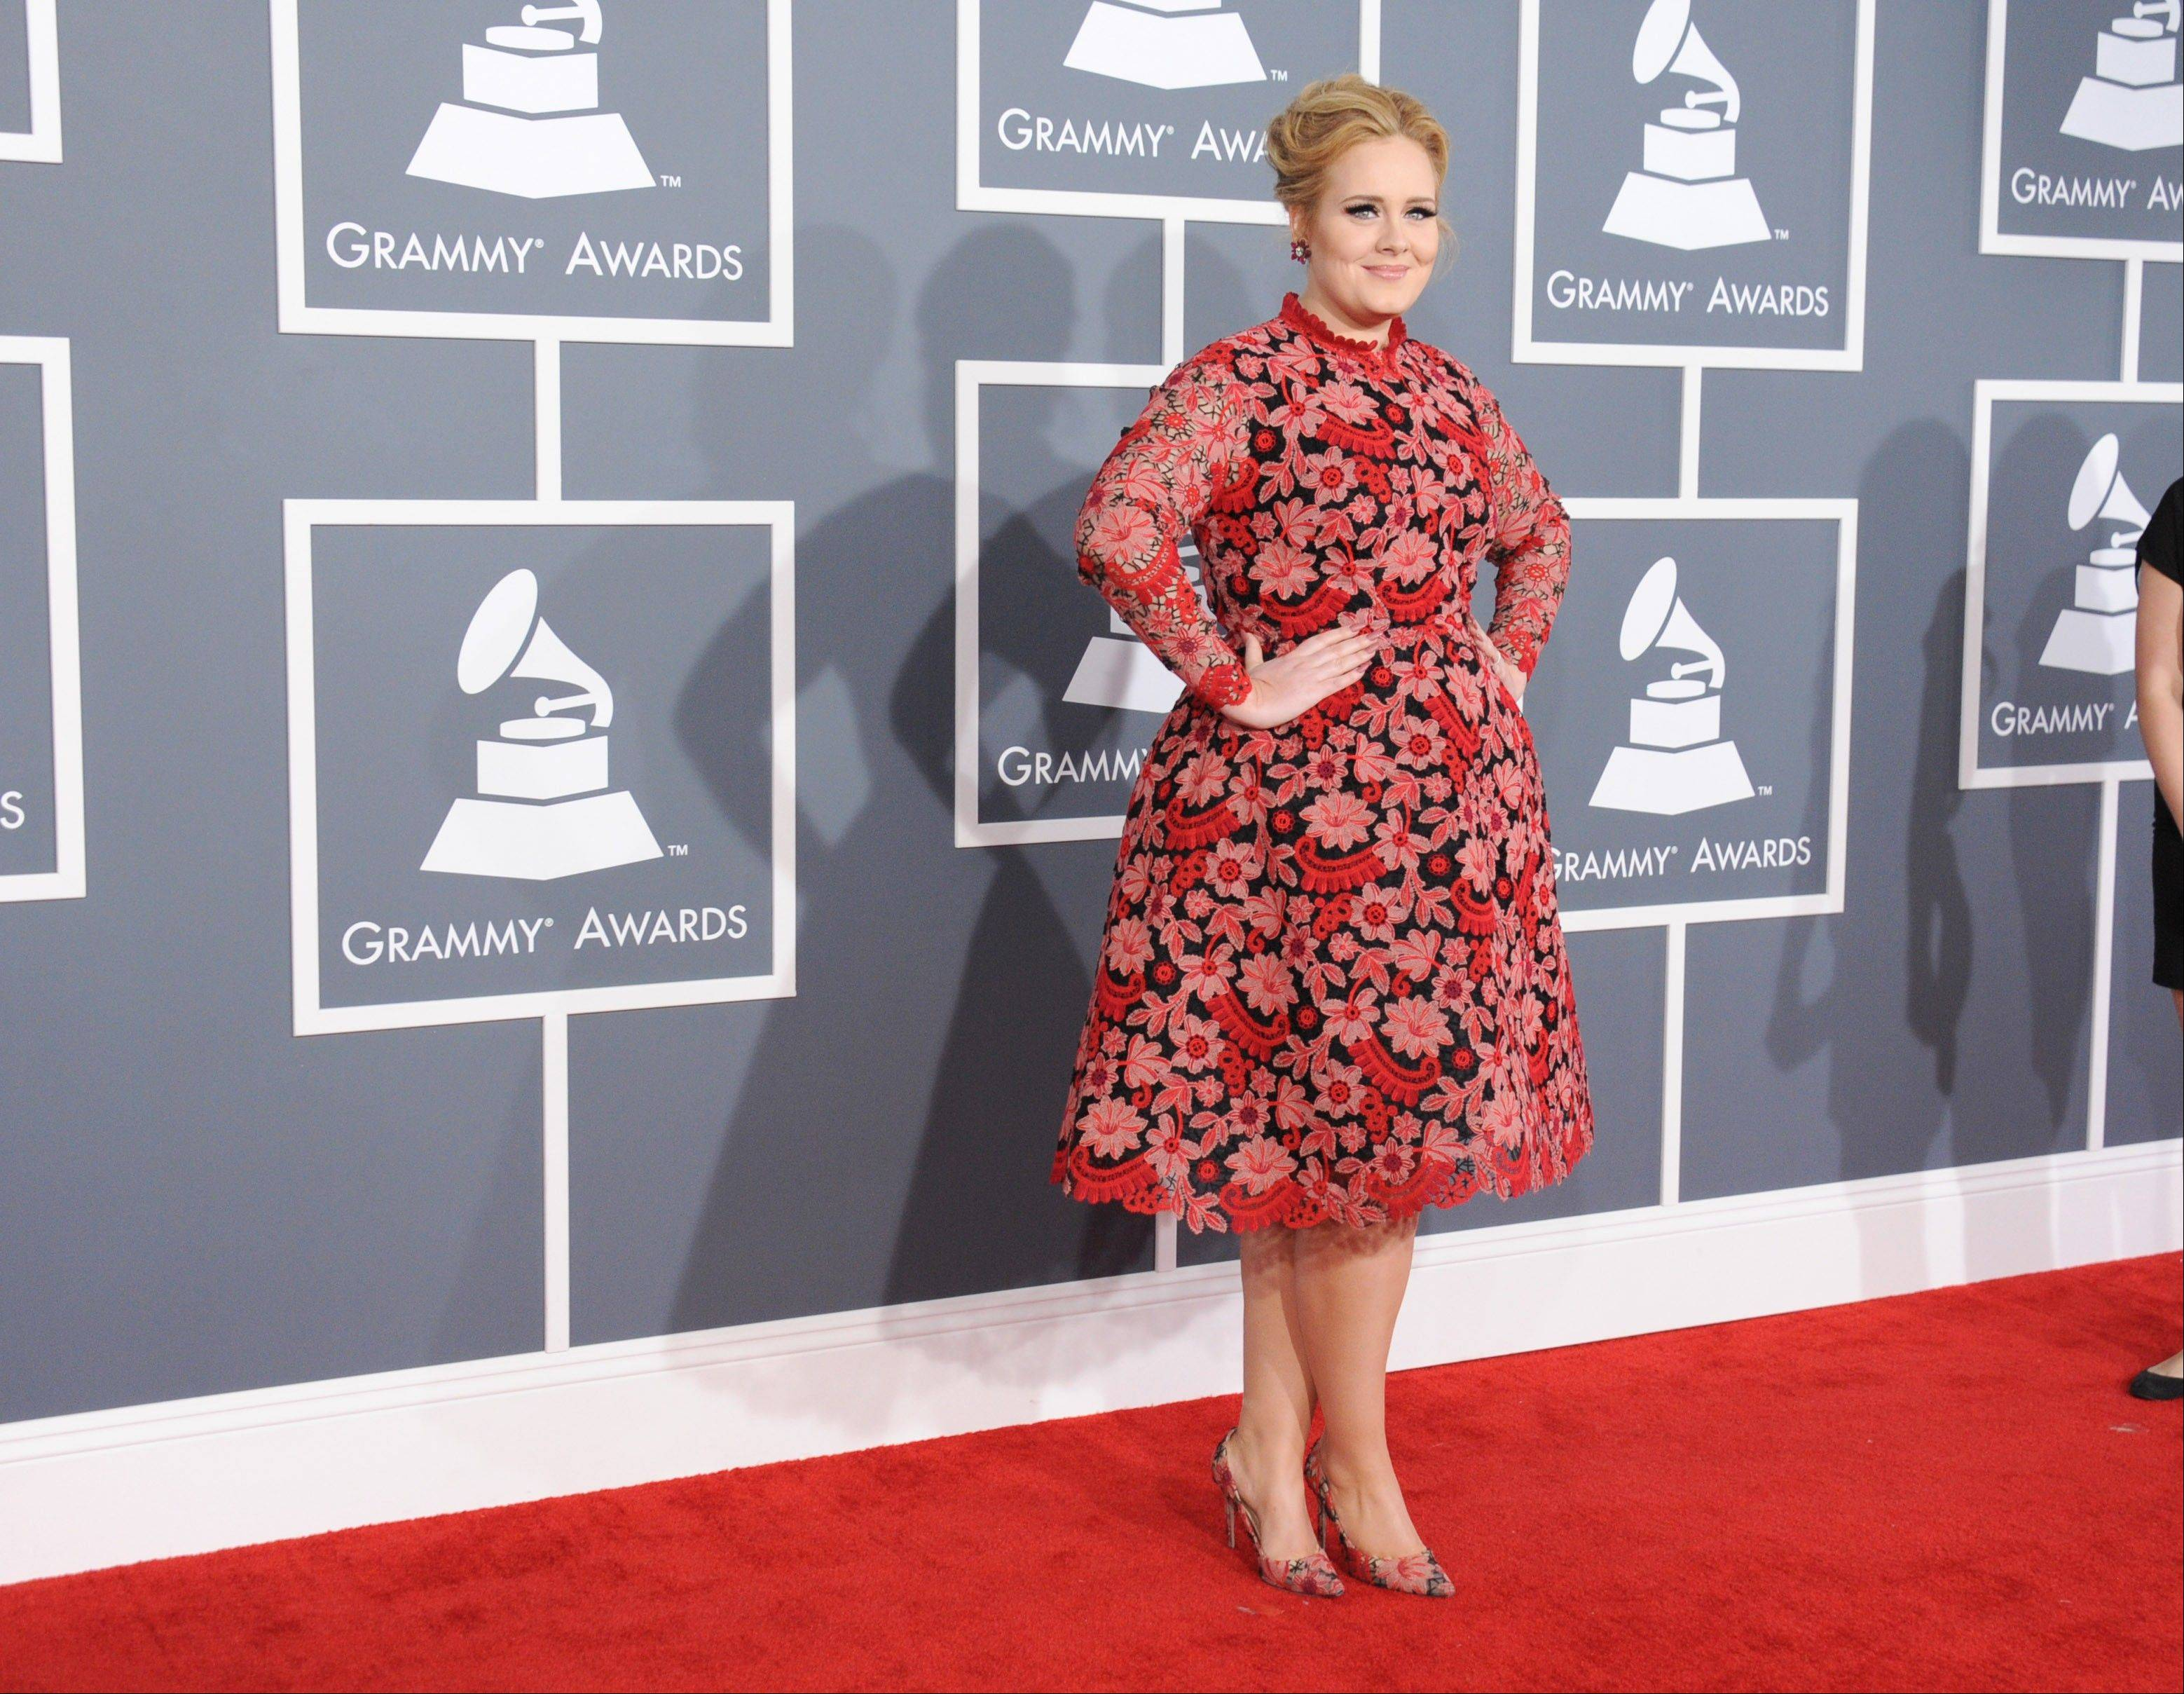 Singer-songwriter Adele arrives at the 55th annual Grammy Awards on Sunday, Feb. 10, 2013, in Los Angeles.